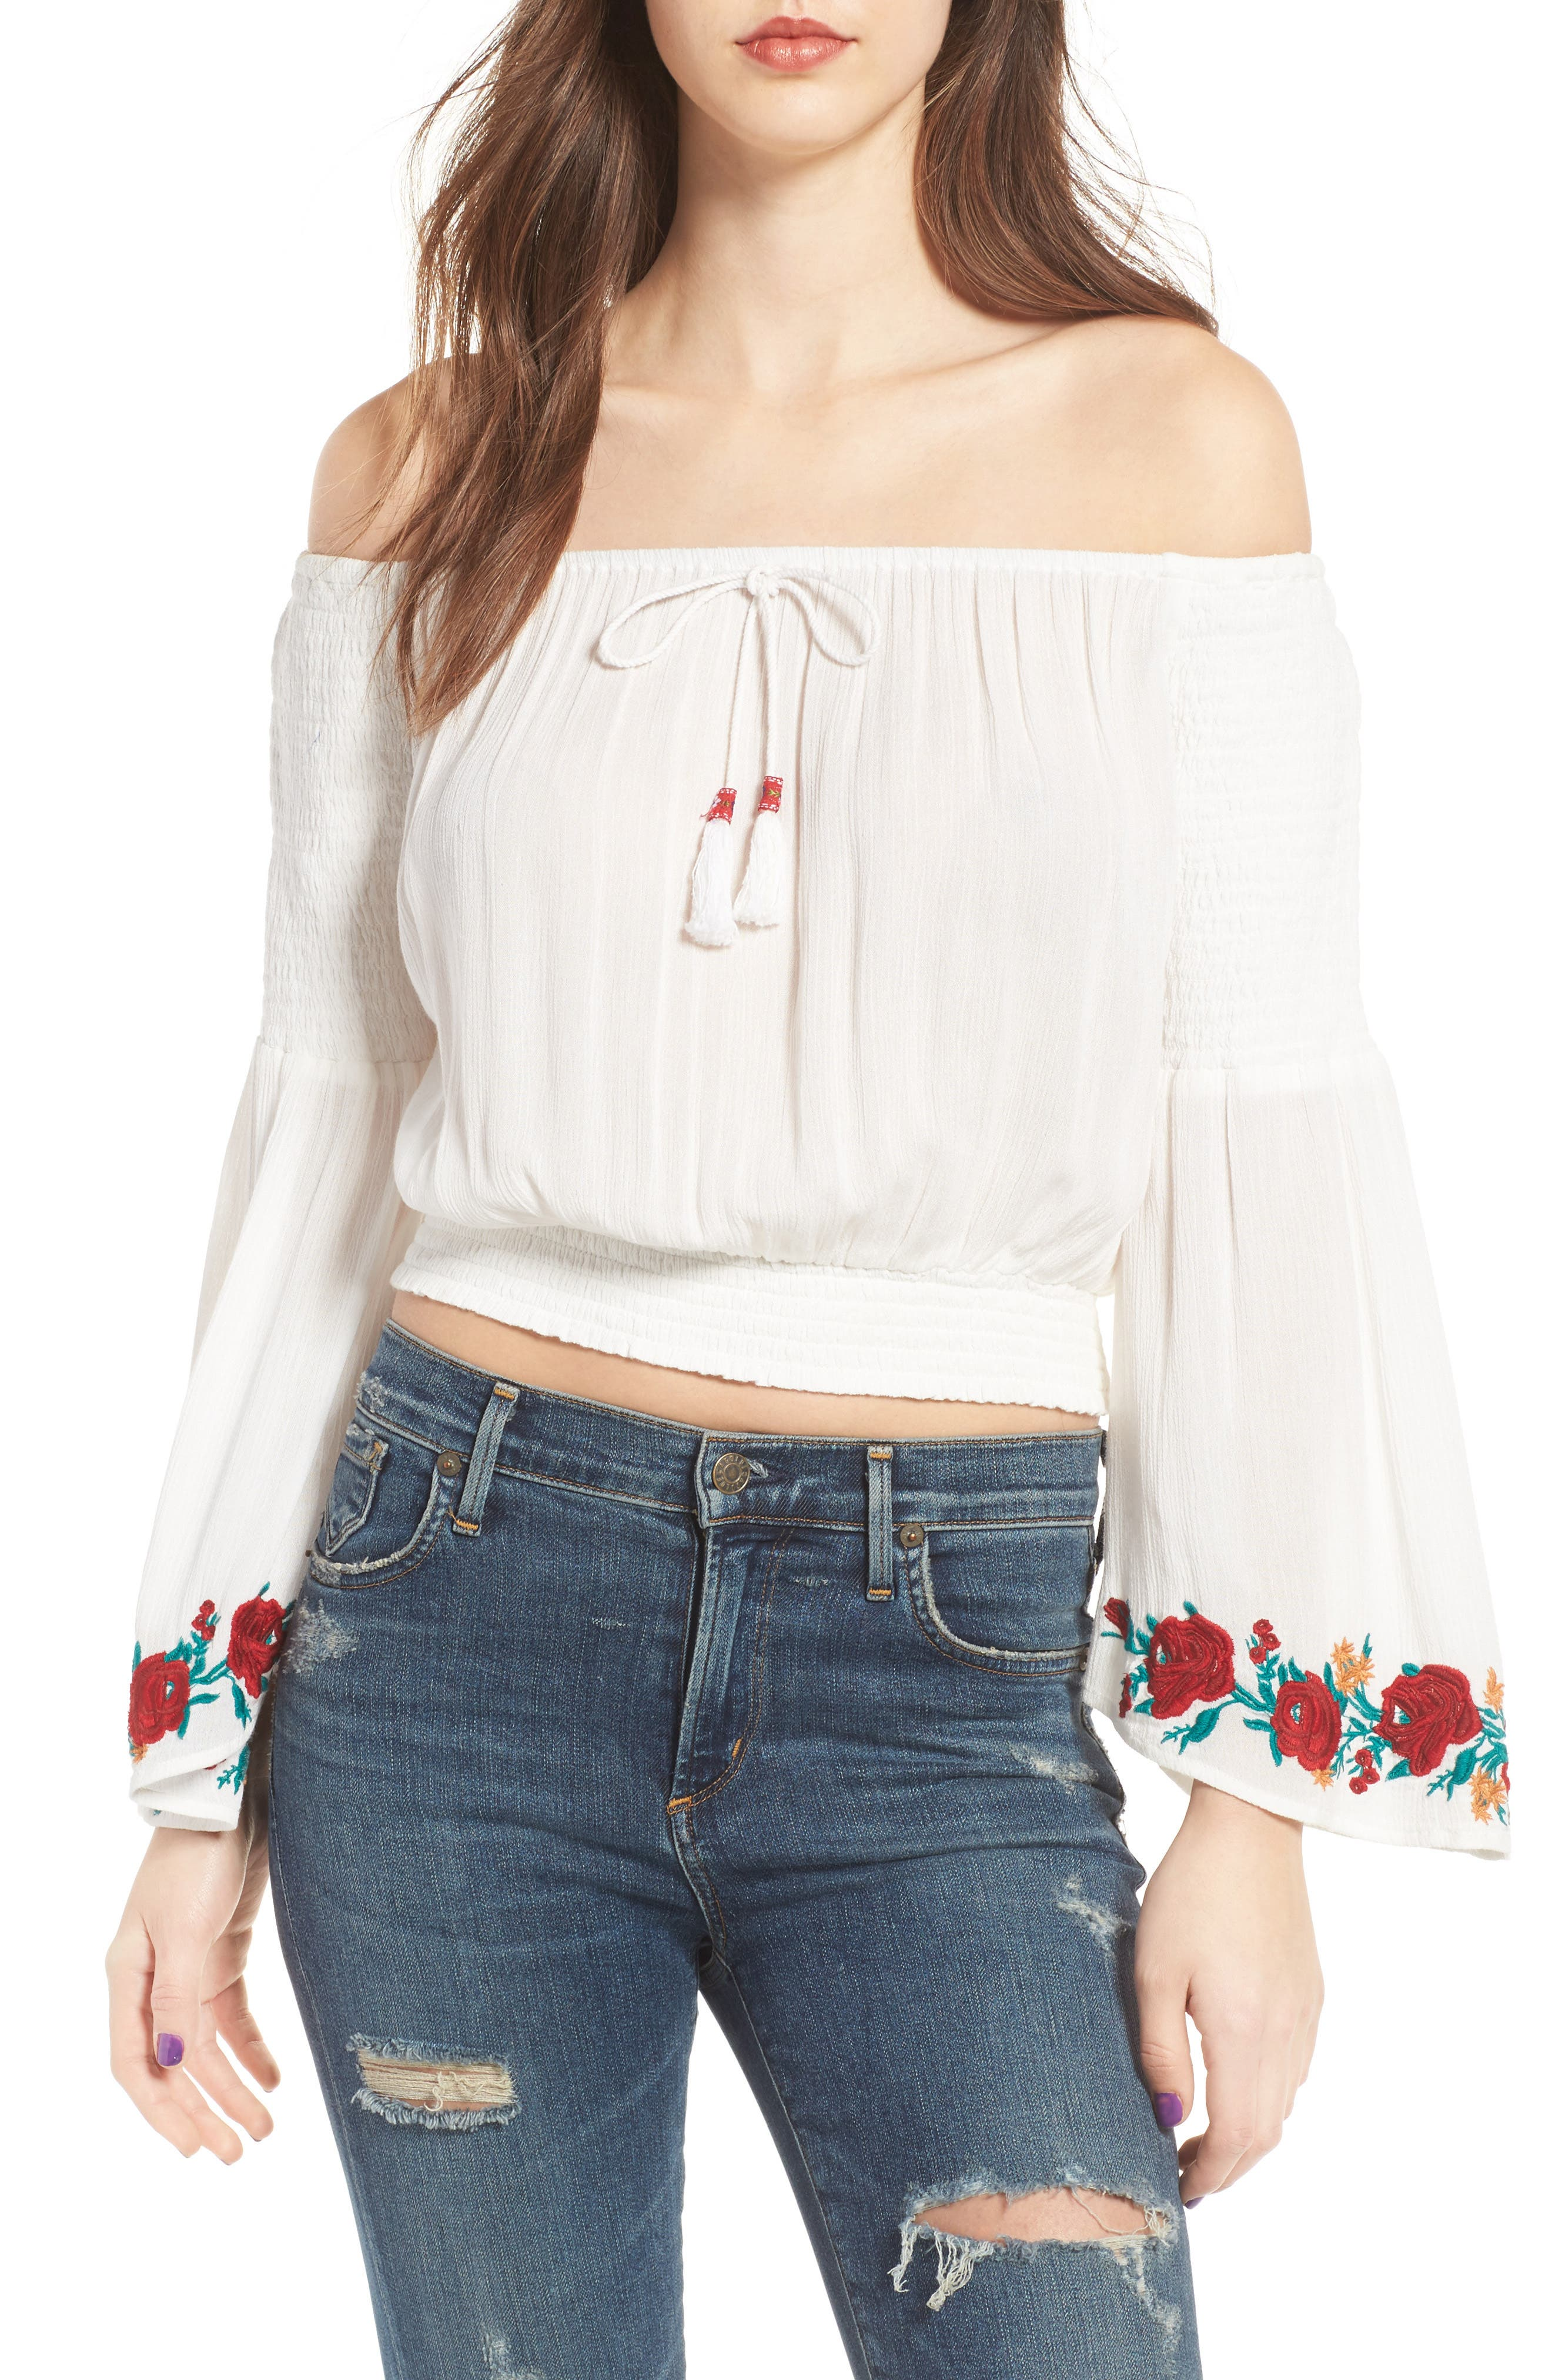 Main Image - Band of Gypsies Embroidered Off-the-Shoulder Crop Top